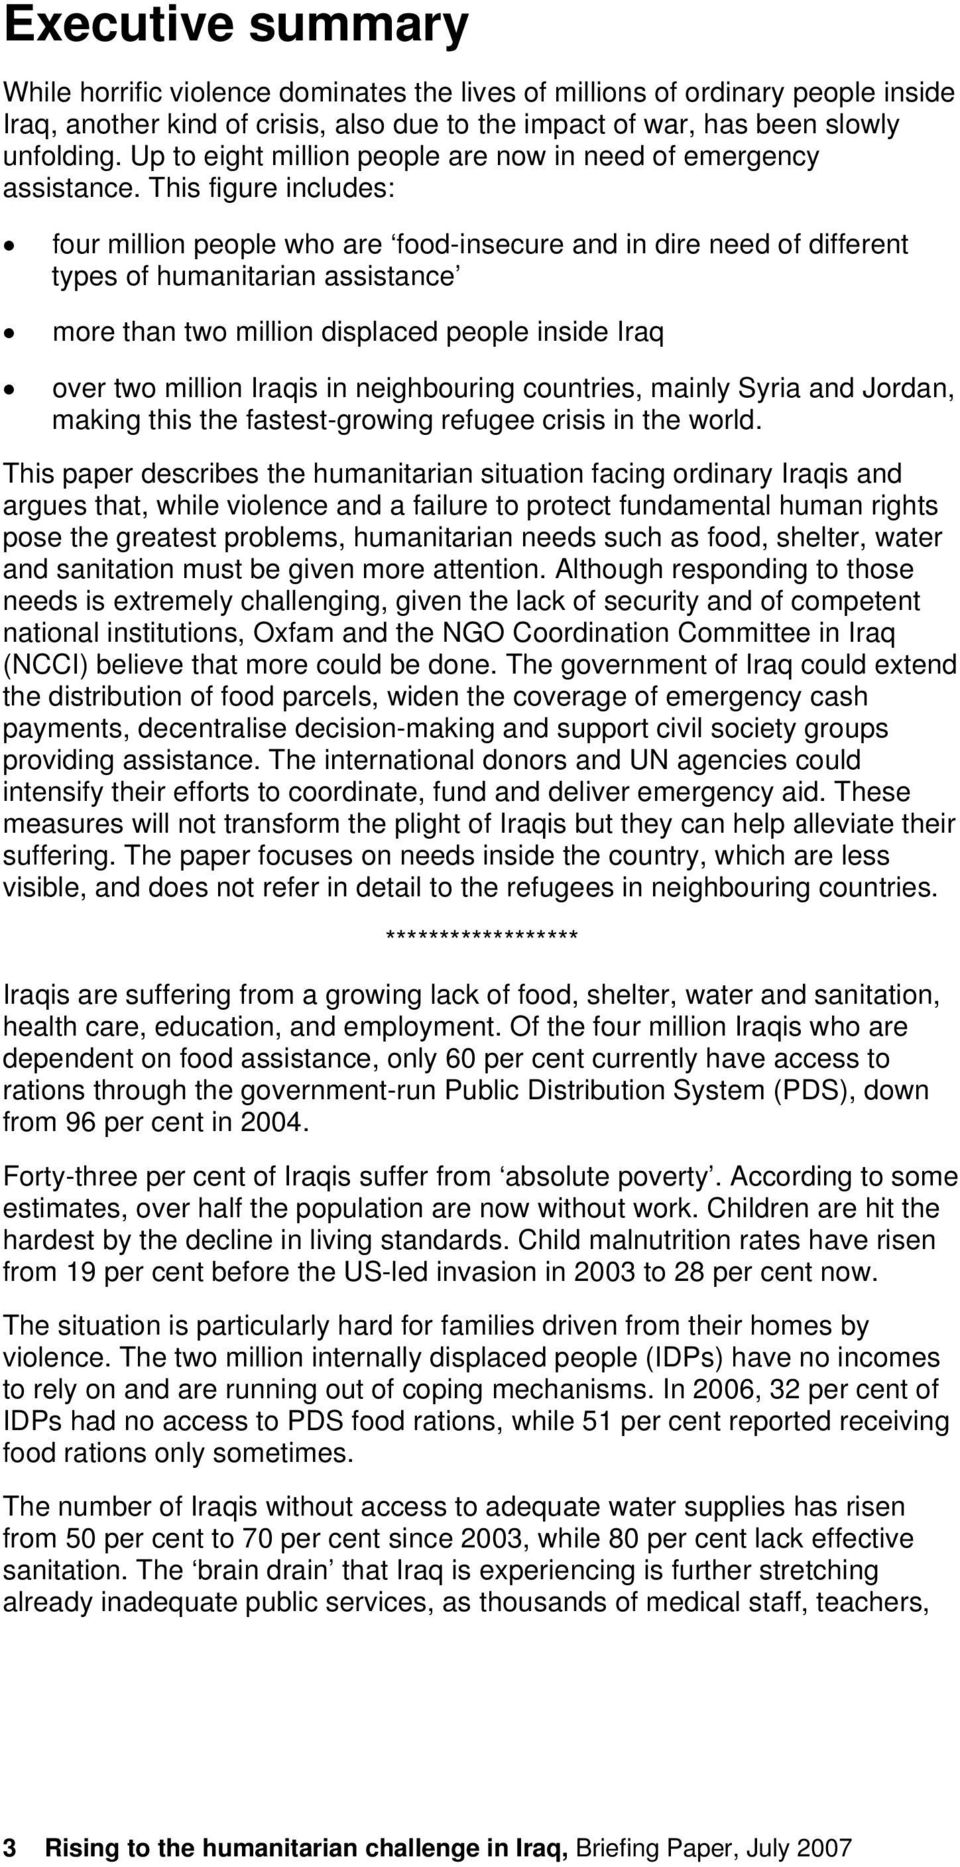 This figure includes: four million people who are food-insecure and in dire need of different types of humanitarian assistance more than two million displaced people inside Iraq over two million